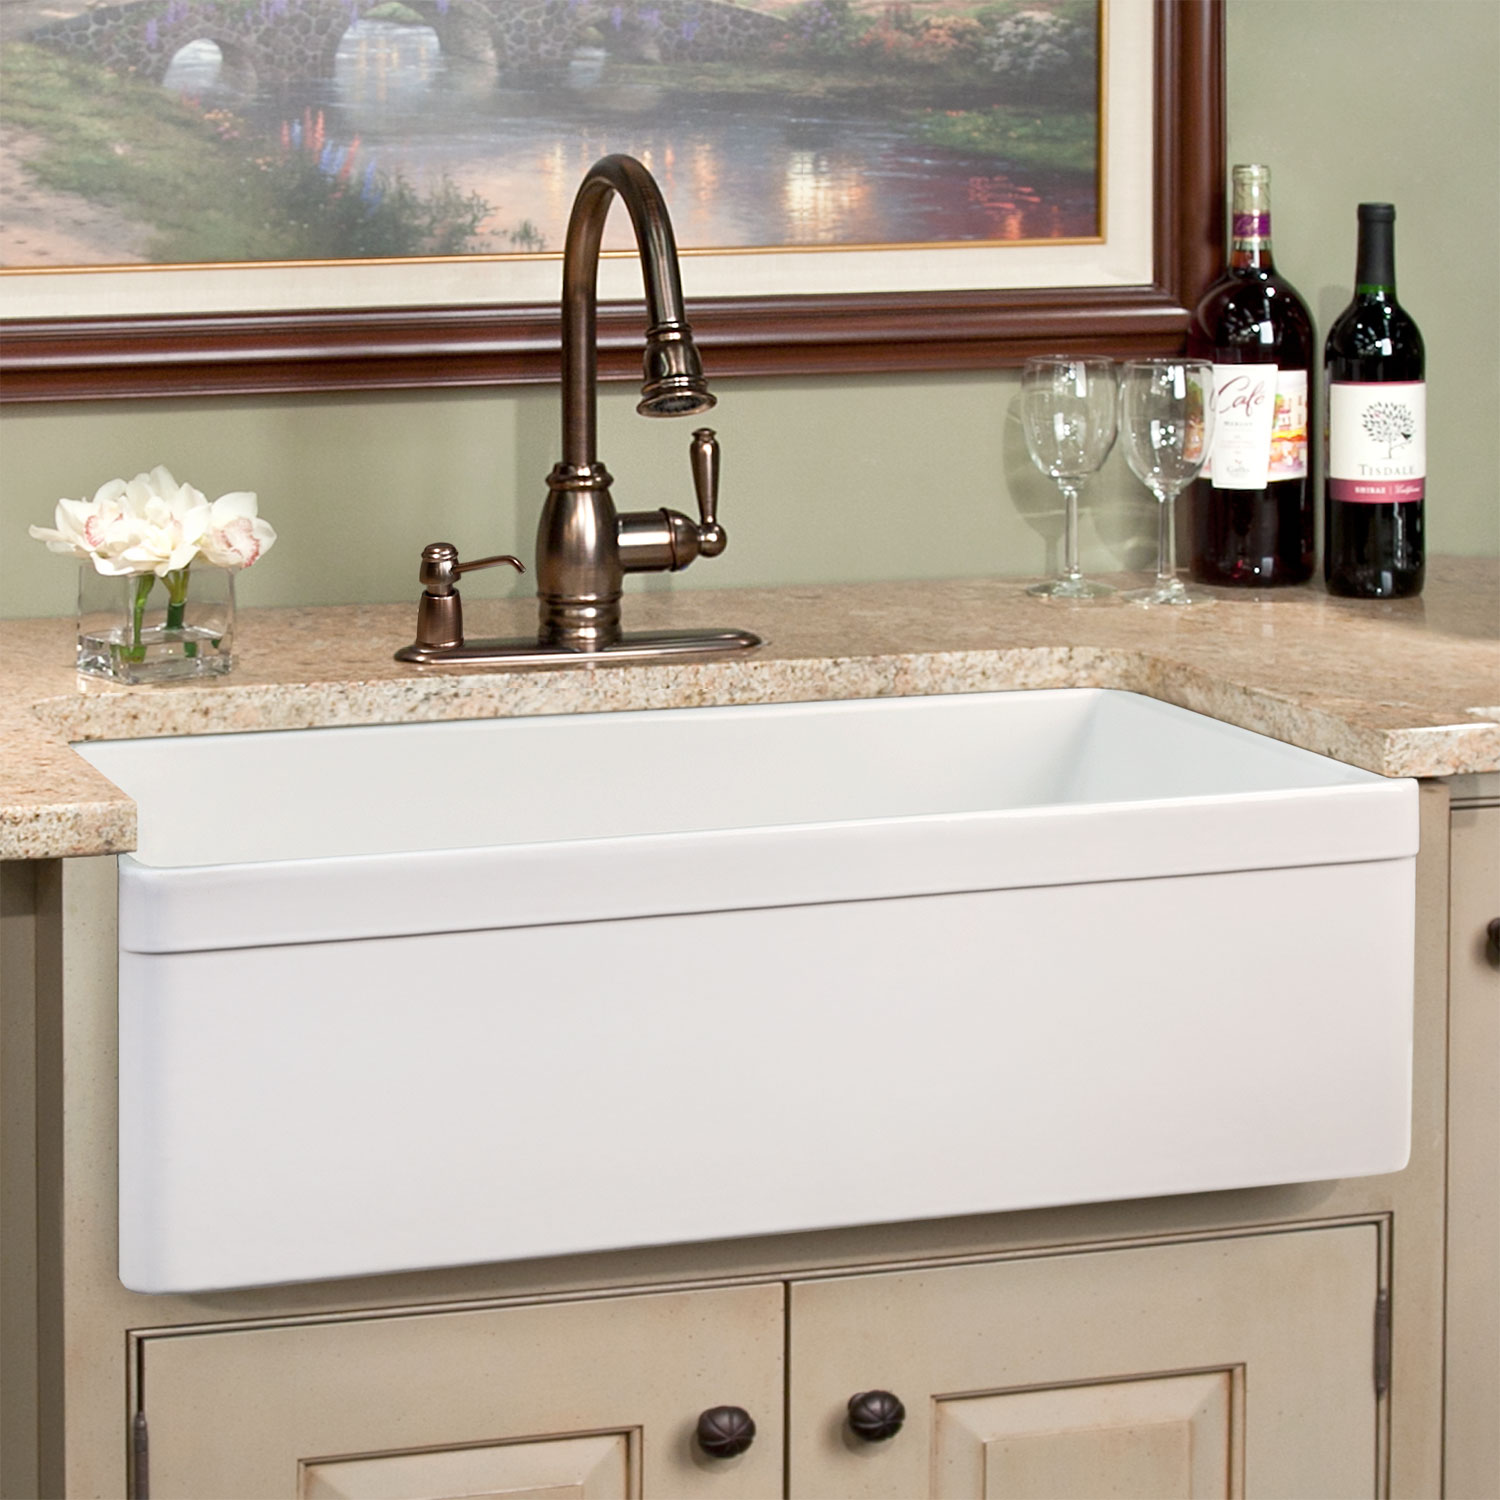 Menards Sinks | Swanstone Kitchen Sinks | Pedal Stool Sink